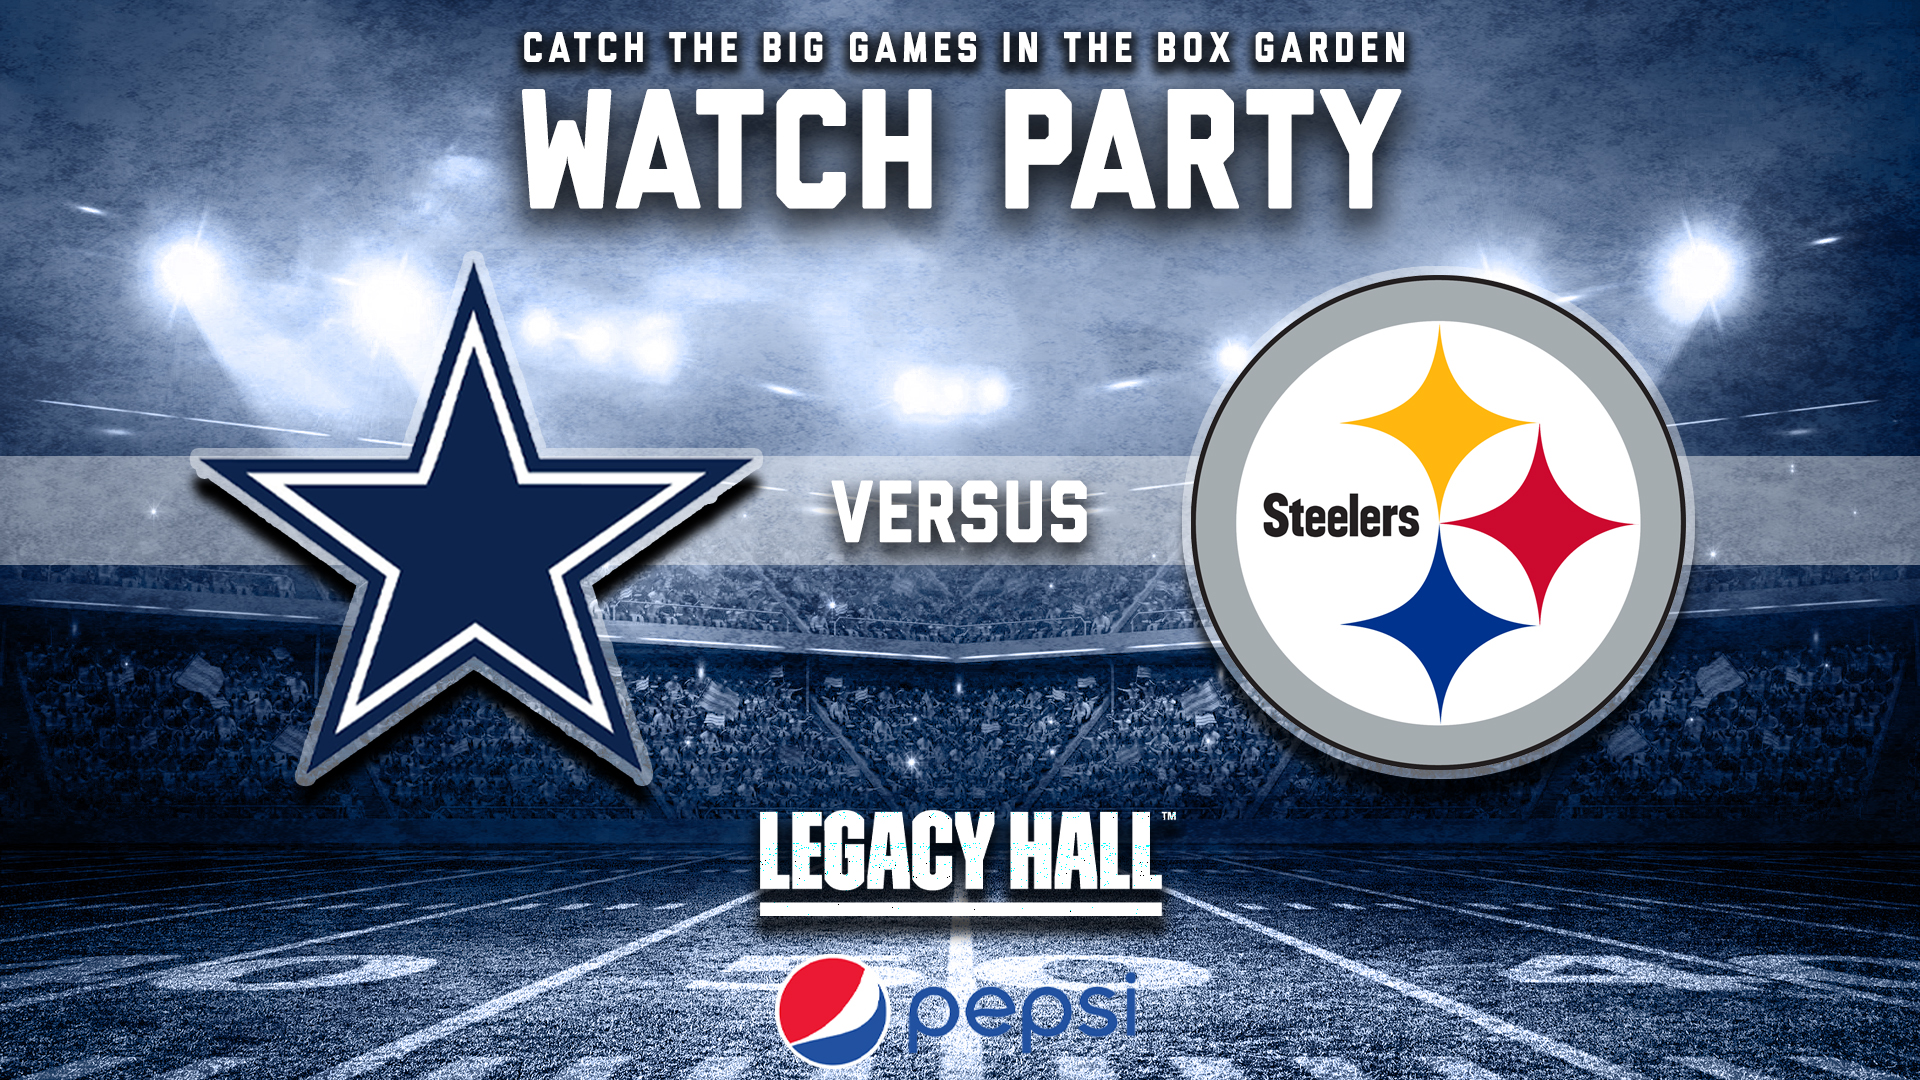 Promo image of Cowboys vs. Steelers Watch Party